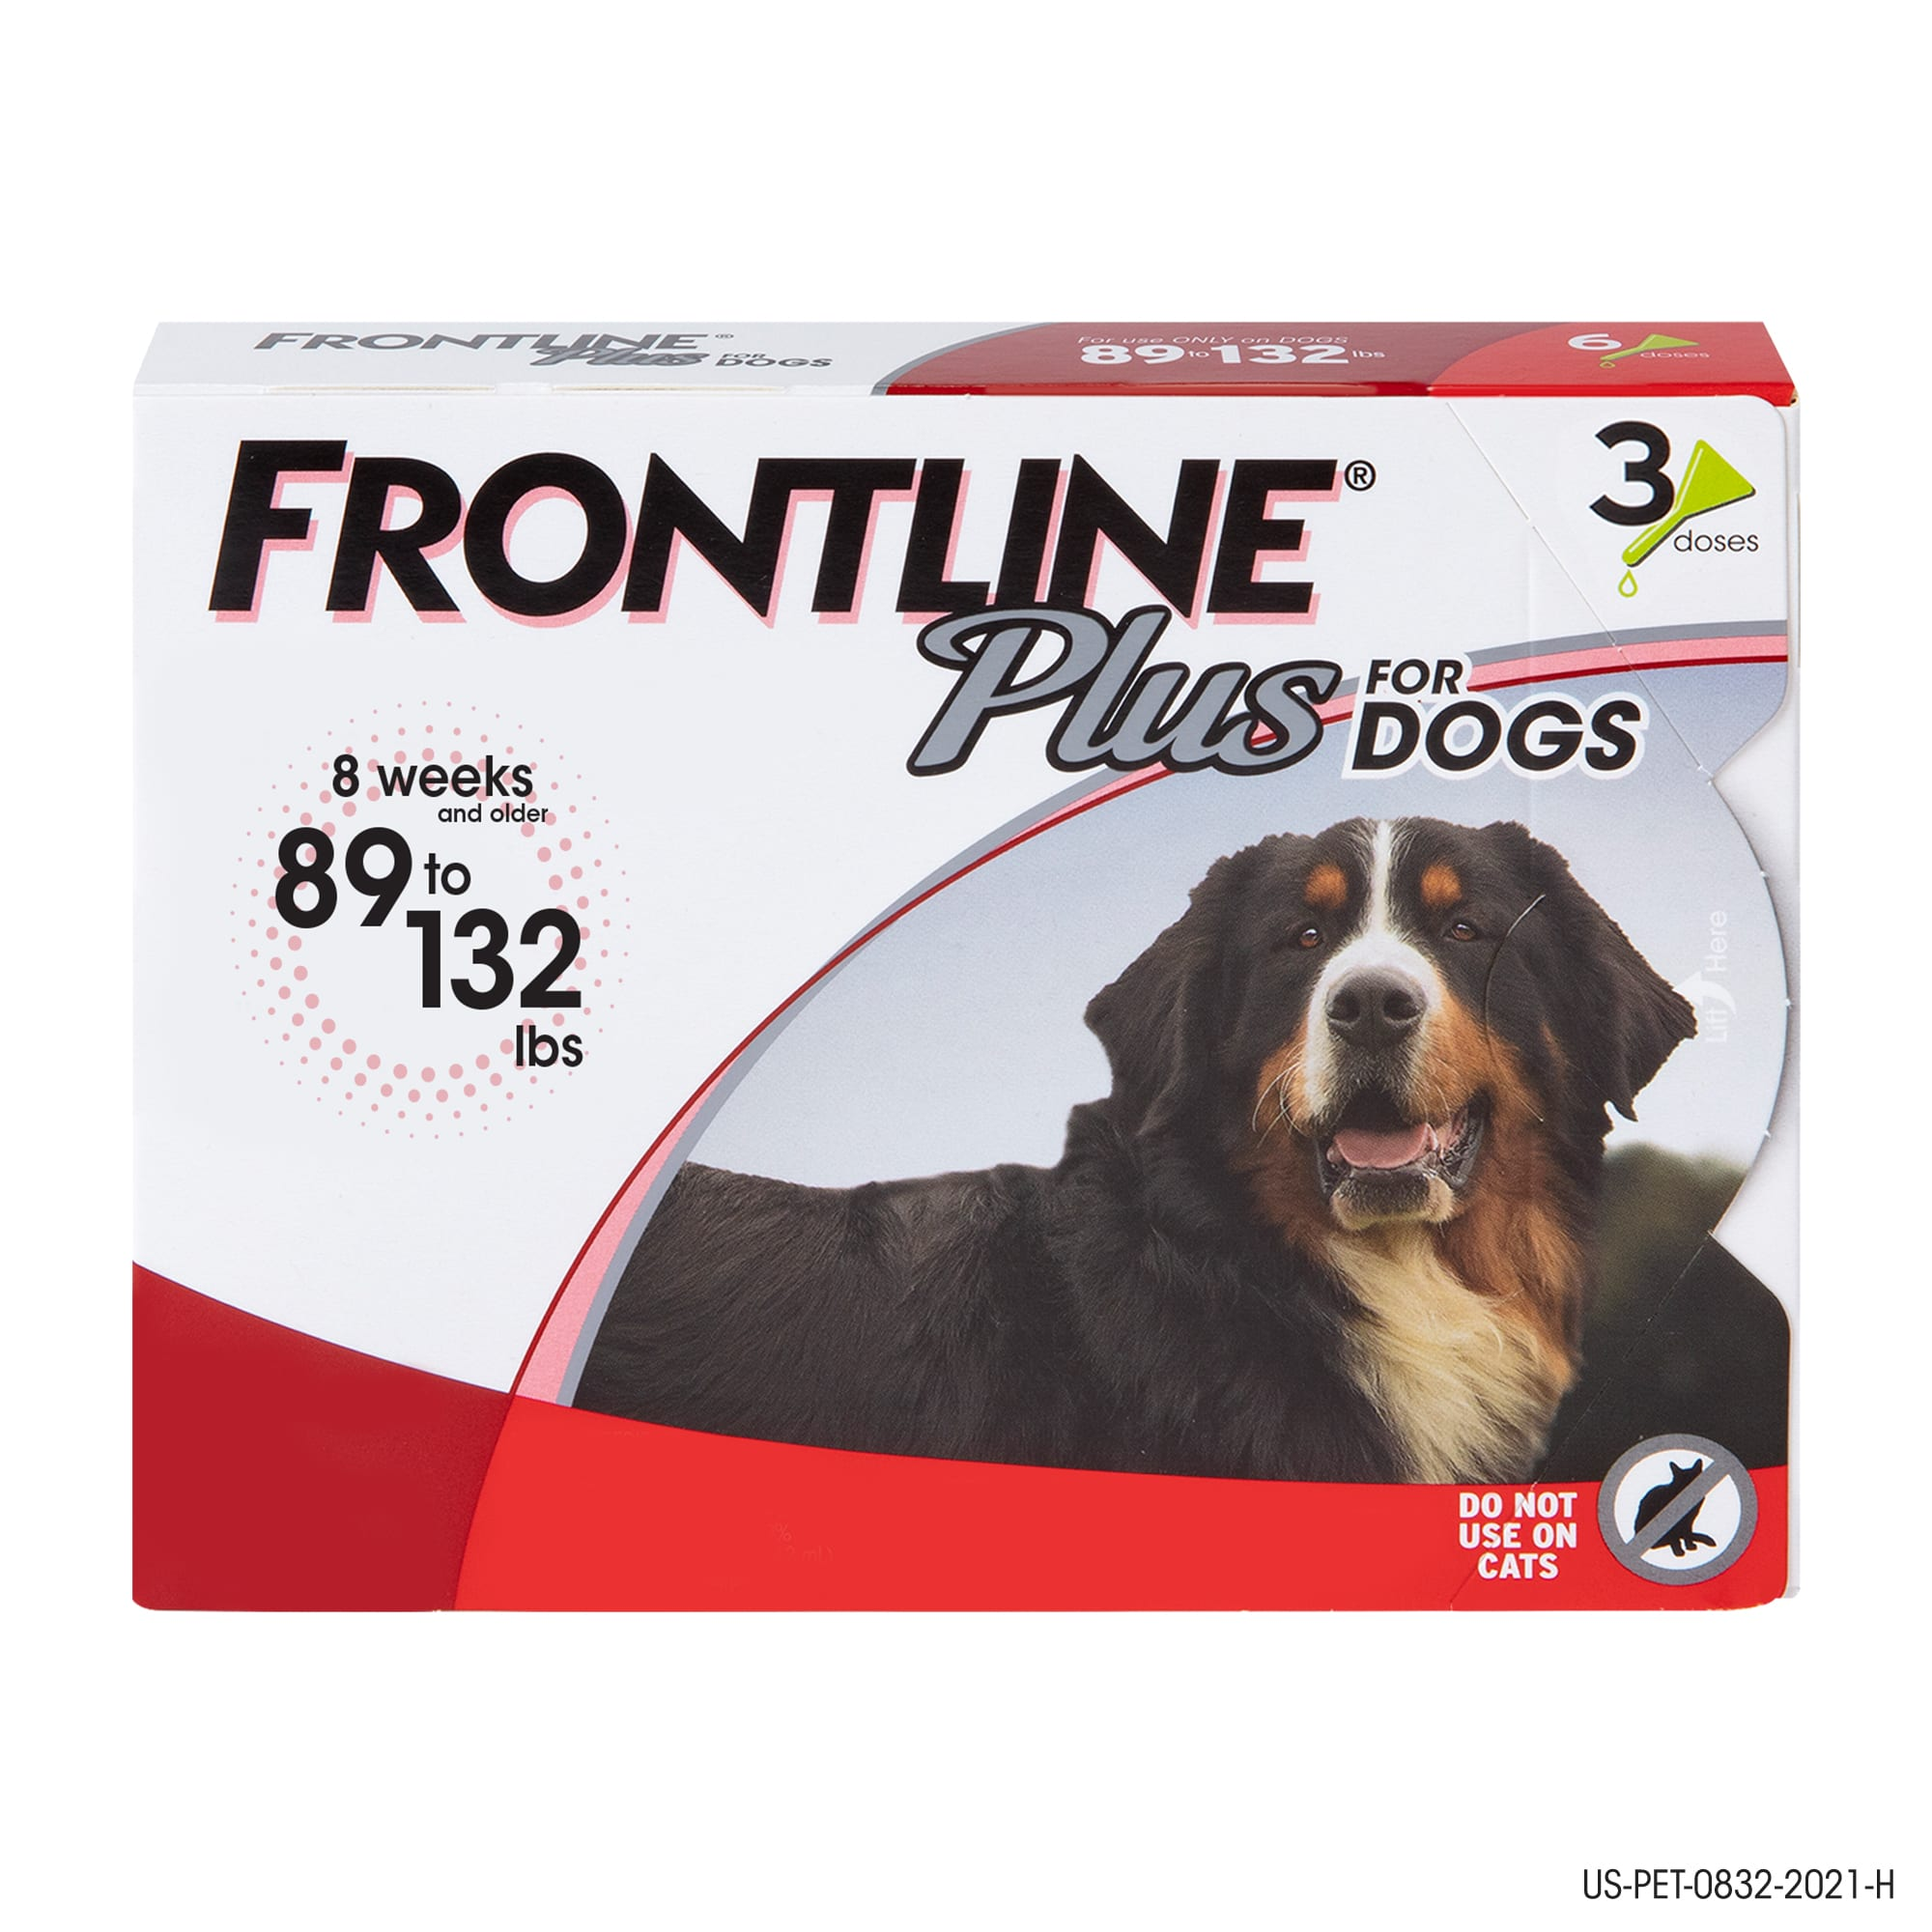 Frontline Plus Flea And Tick Treatment For X Large Dogs Up To 89 To 132 Lbs 3 Treatments Petco